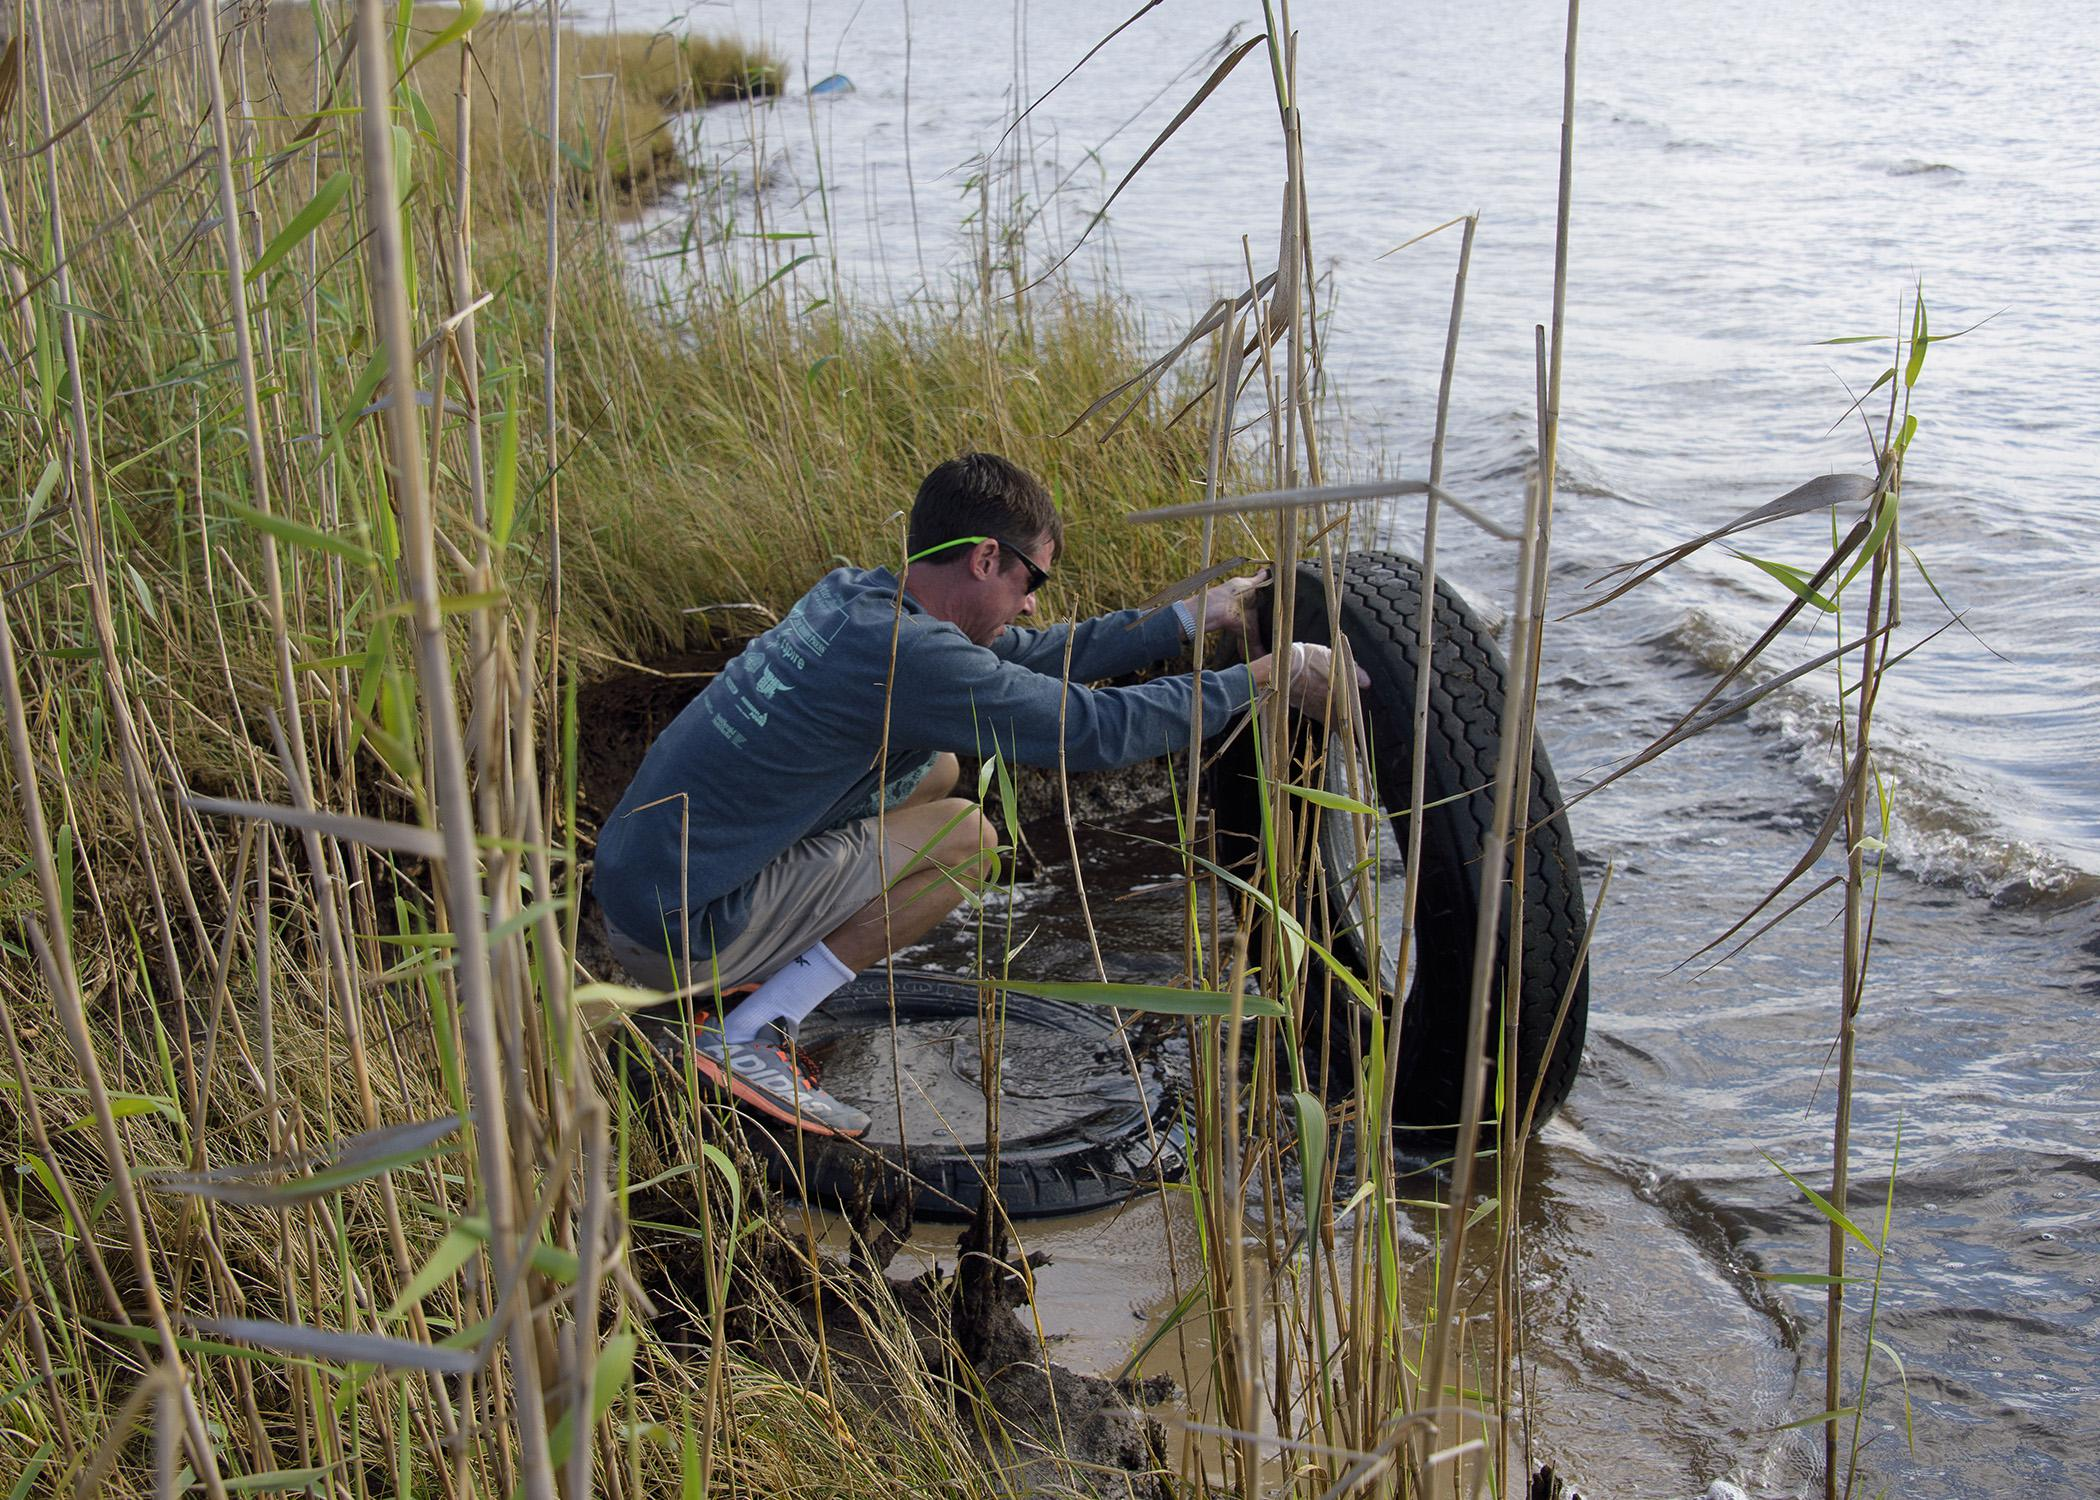 A man kneeling in tall grass picks up a tire out of water.